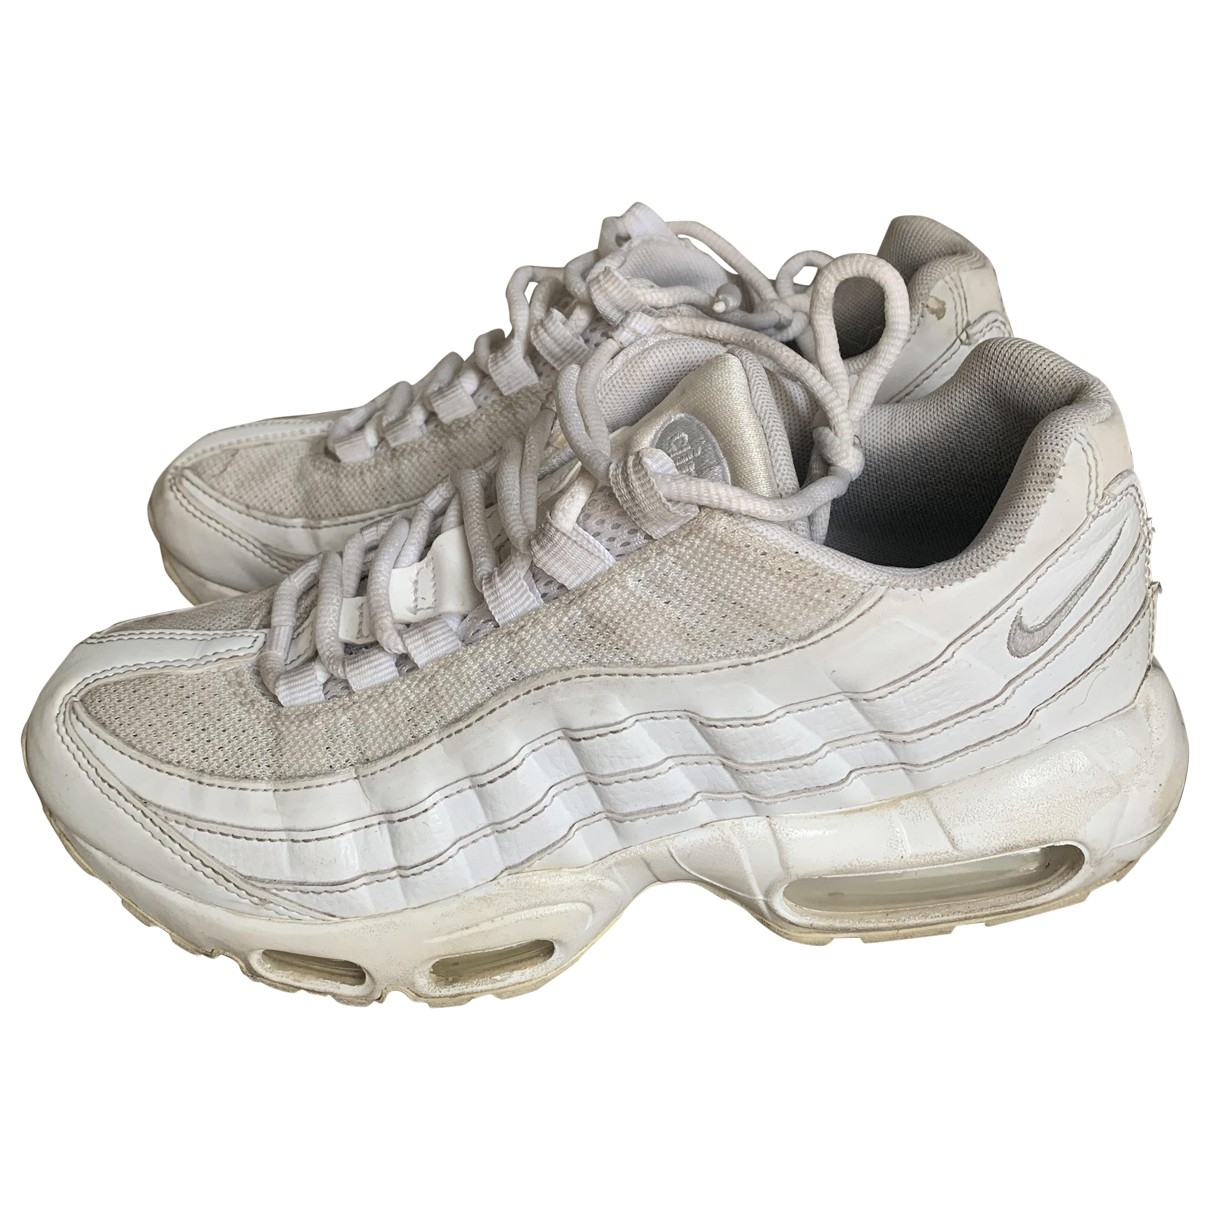 Nike Air Max 95 White Leather Trainers for Women 38 EU